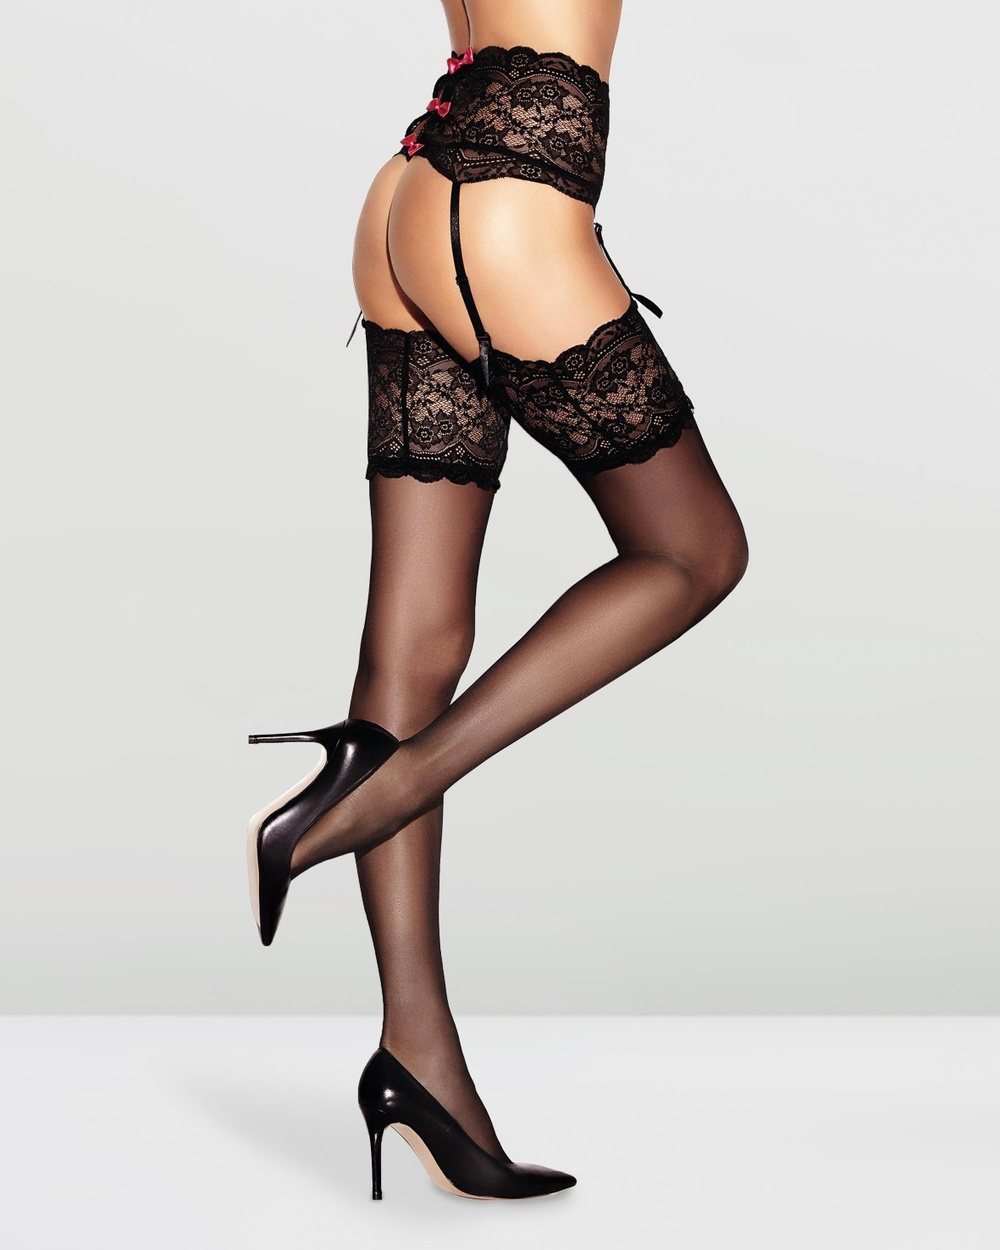 Ann Summers Bow Back Stocking Suspender Set Hold Up Stockings Black